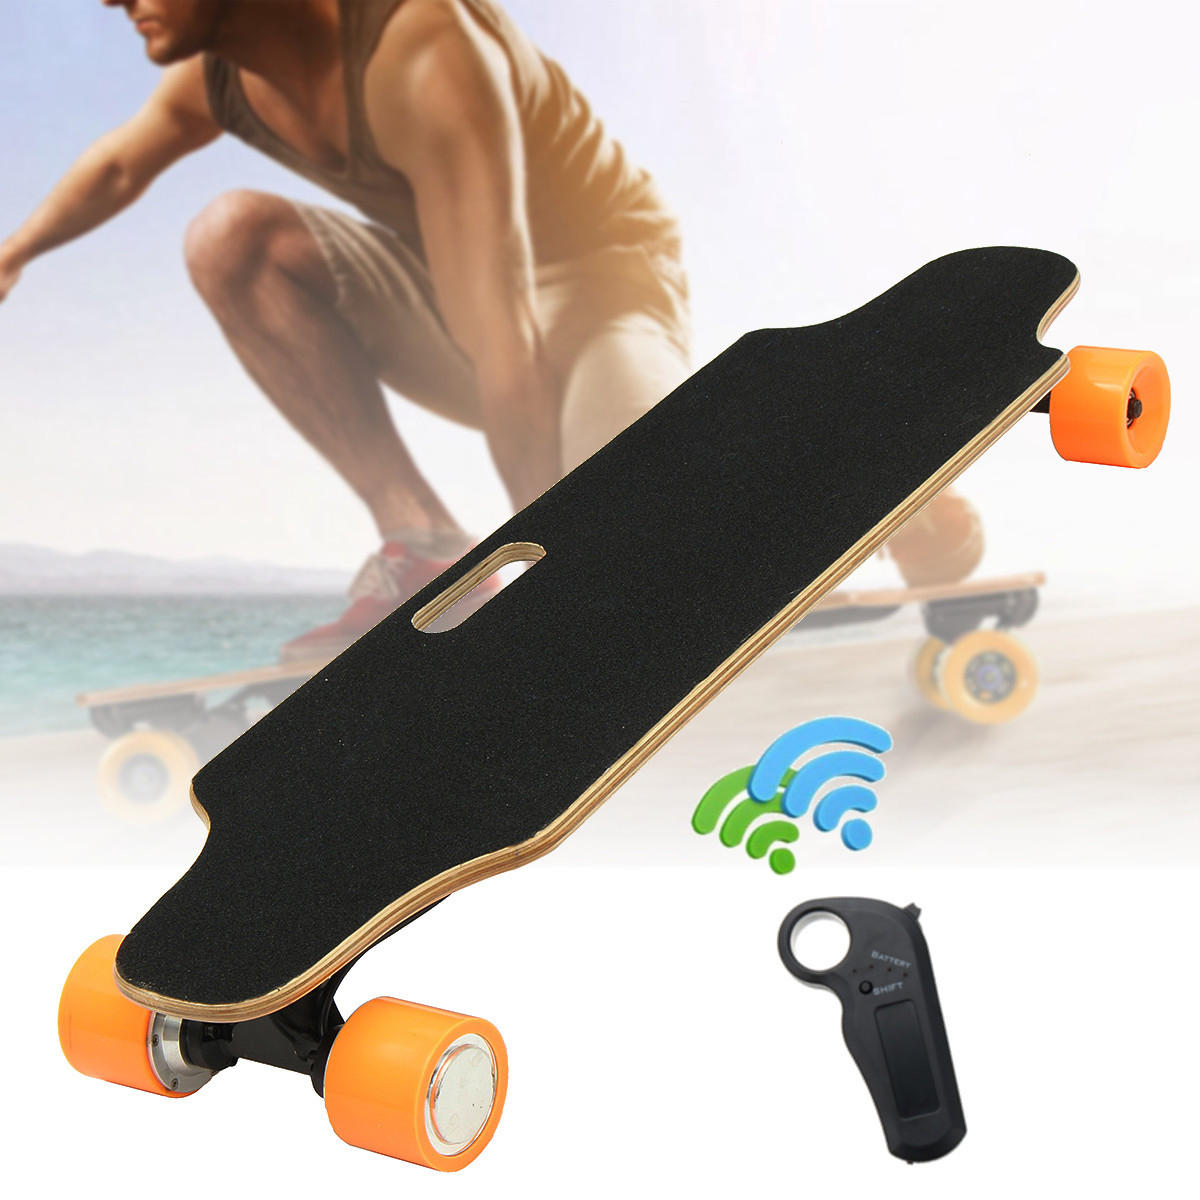 Remote Control Skateboard >> Alfas 250w 15km H Electric Skateboard Scooter Remote Control